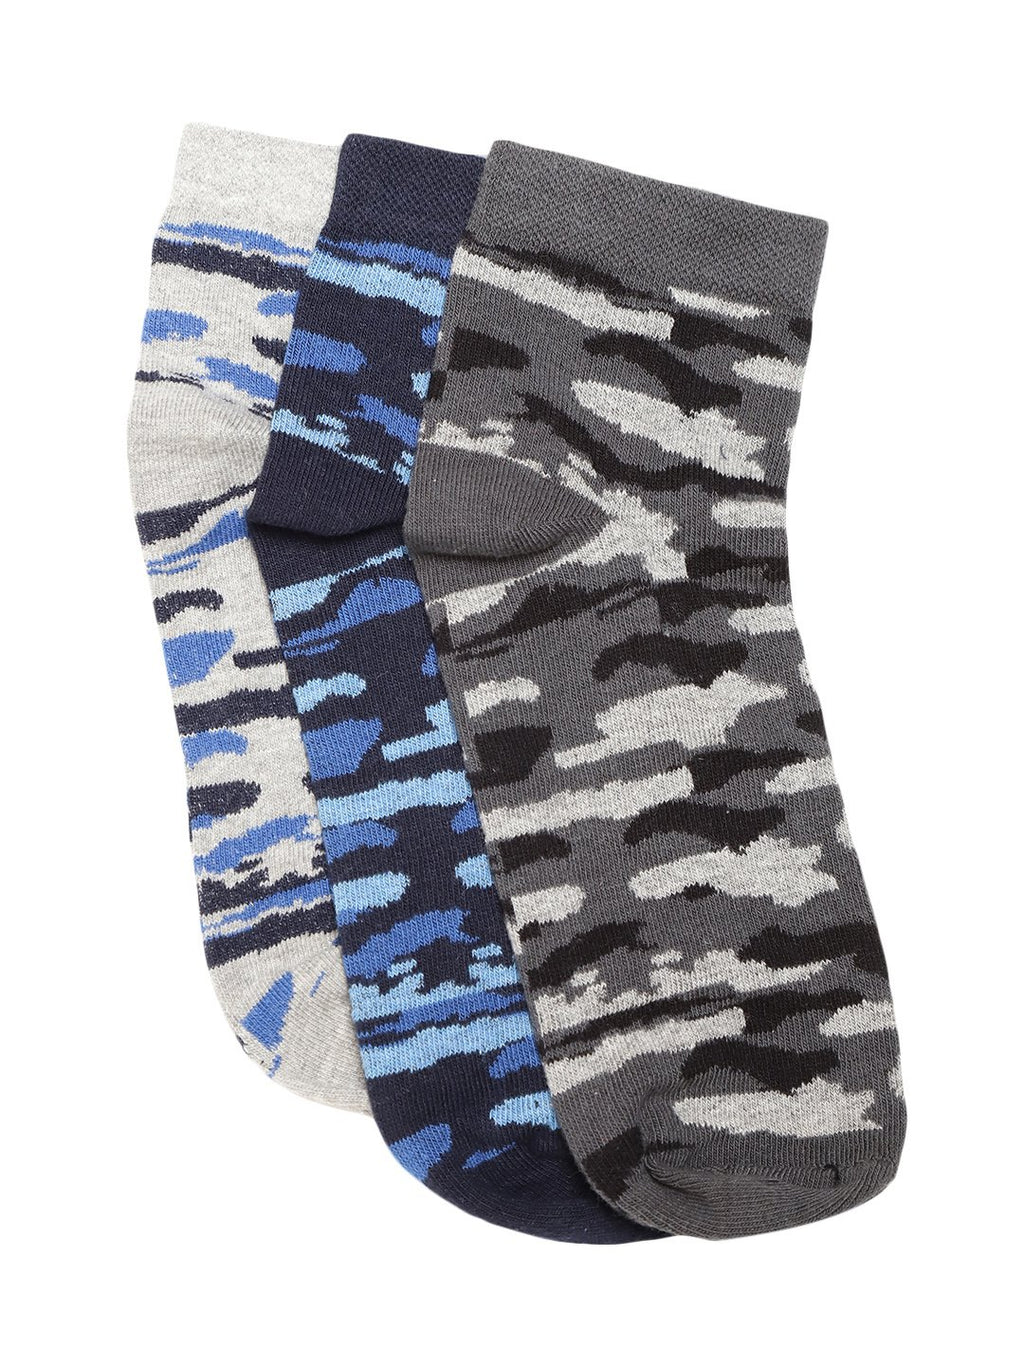 Blueberry set of 3 multi colour ankle length socks